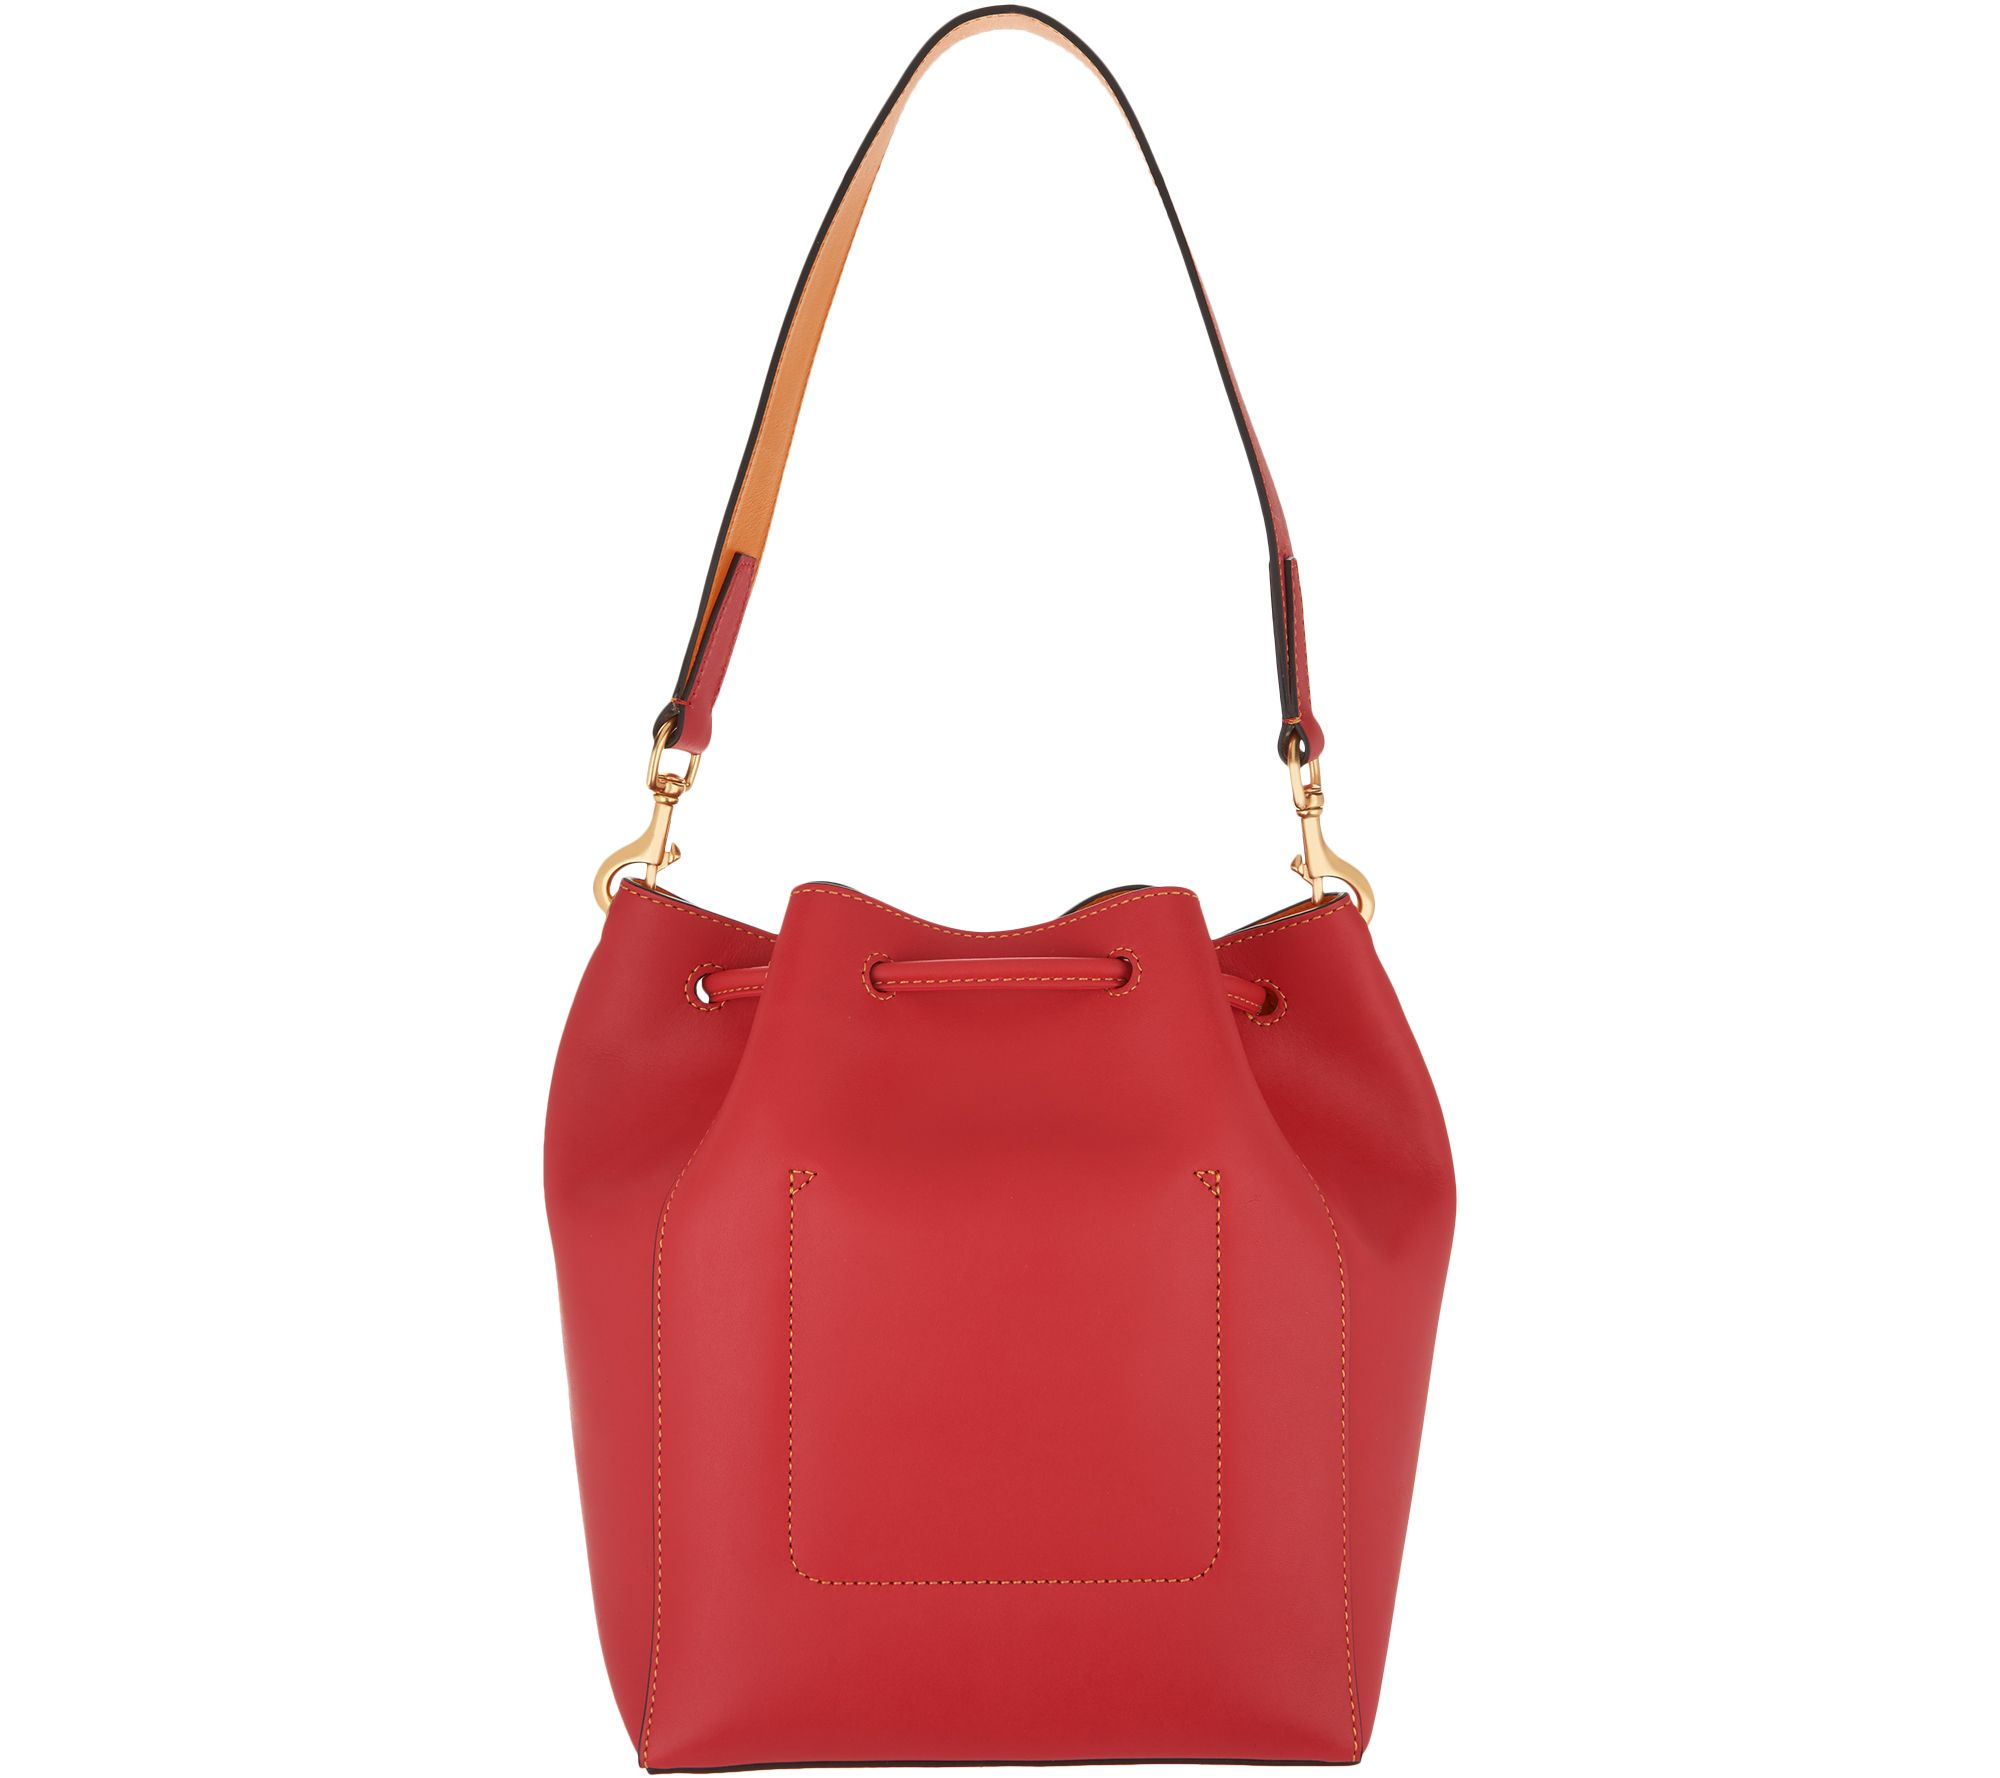 c257ce940dd8 Dooney & Bourke Emerson Leather Drawstring Bag - Marlowe — QVC.com